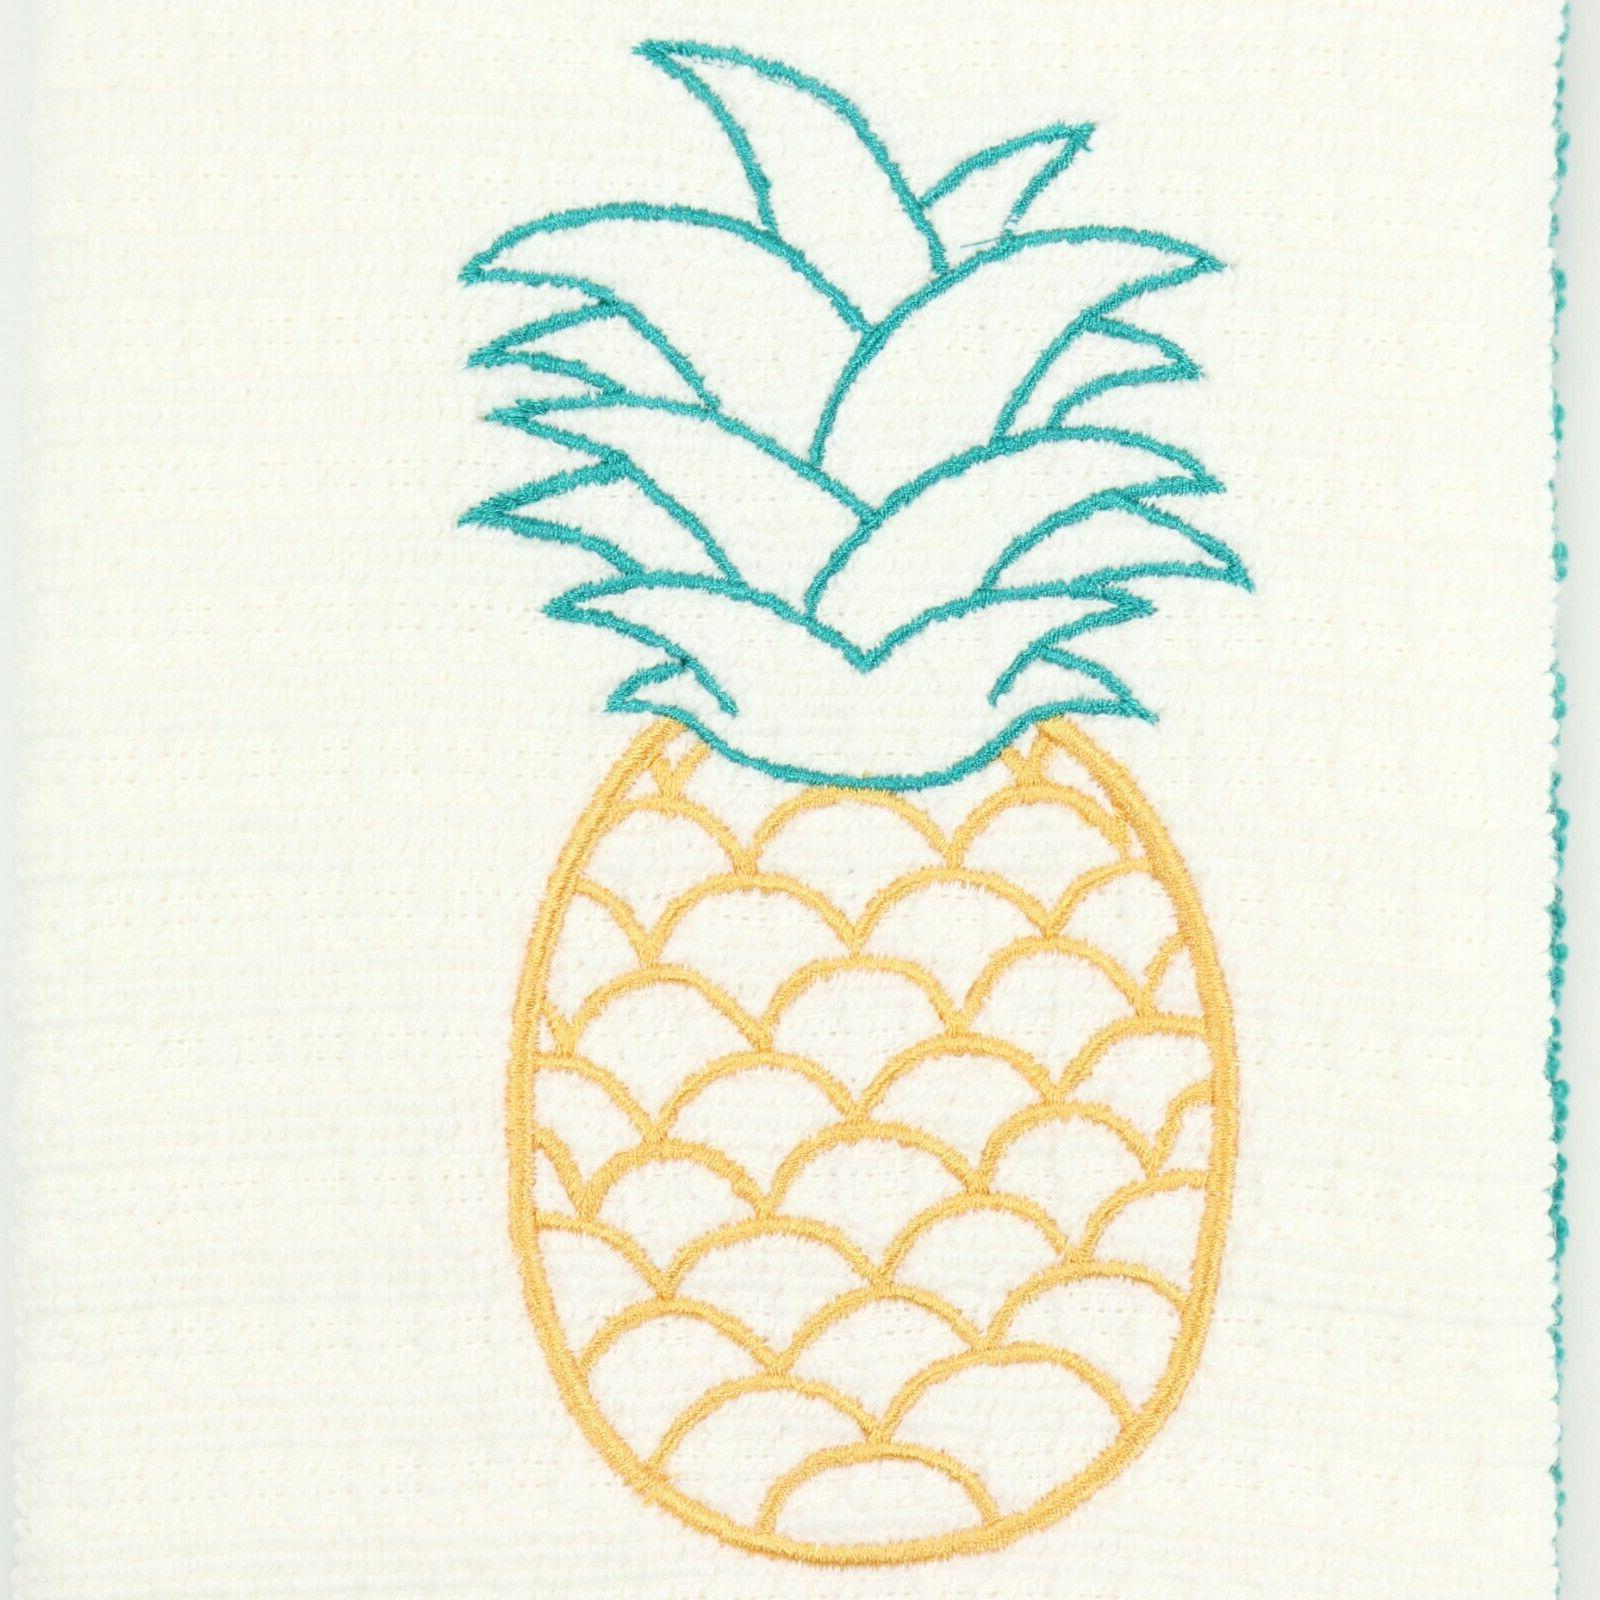 Set Towels - Embroidered Pineapple Design 26 Cotton Towels